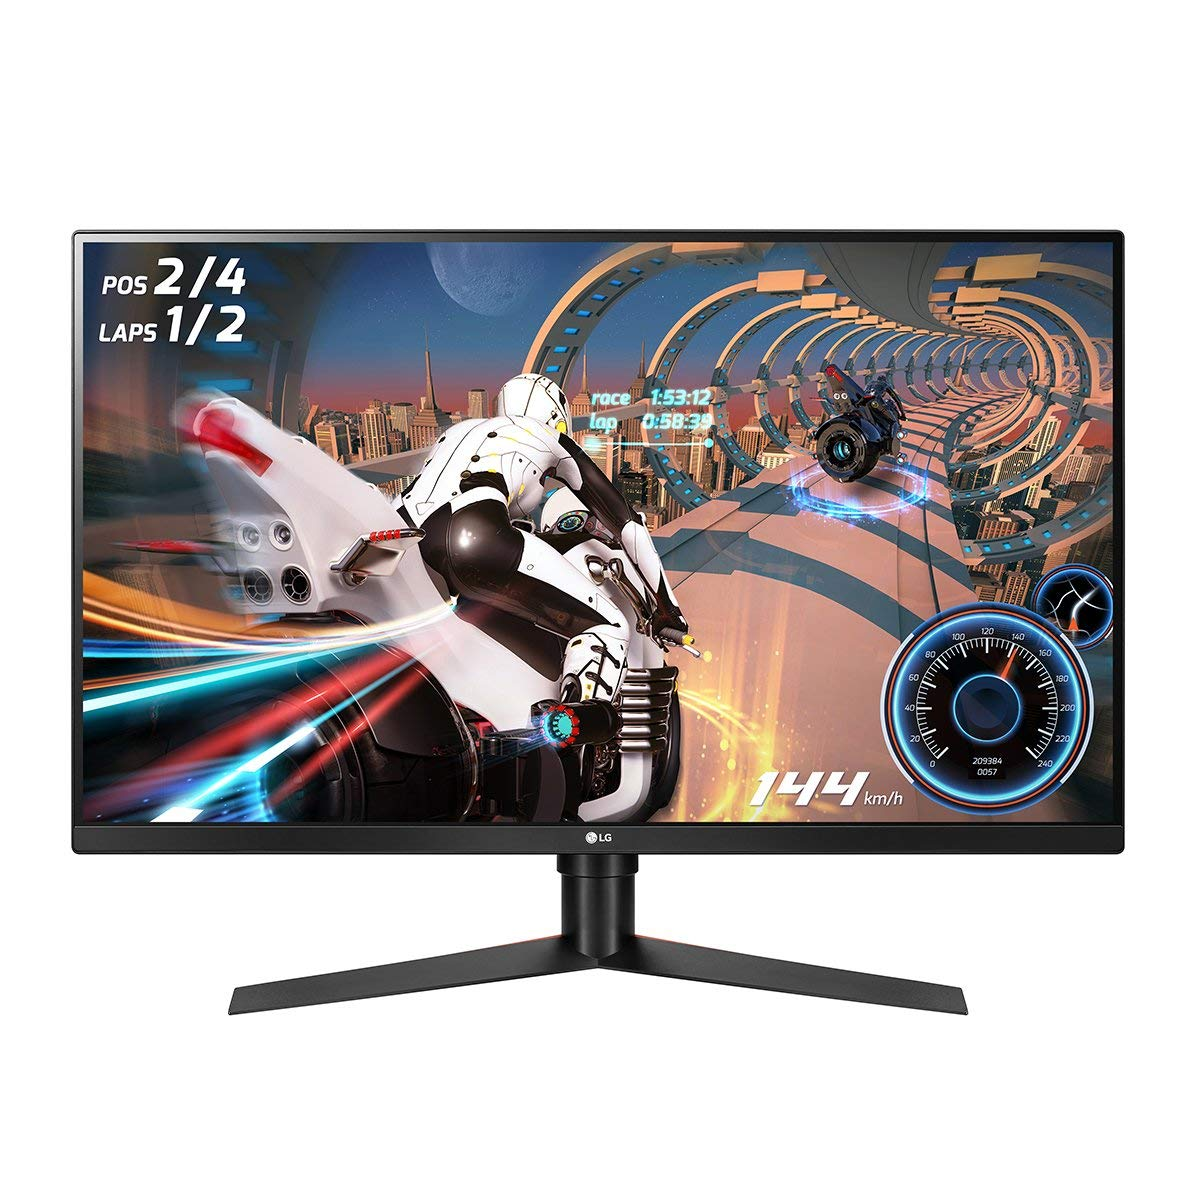 LG 32GK650F-B 32 QHD Gaming Monitor with 144Hz Refresh Rate and Radeon FreeSync Technology Renewed